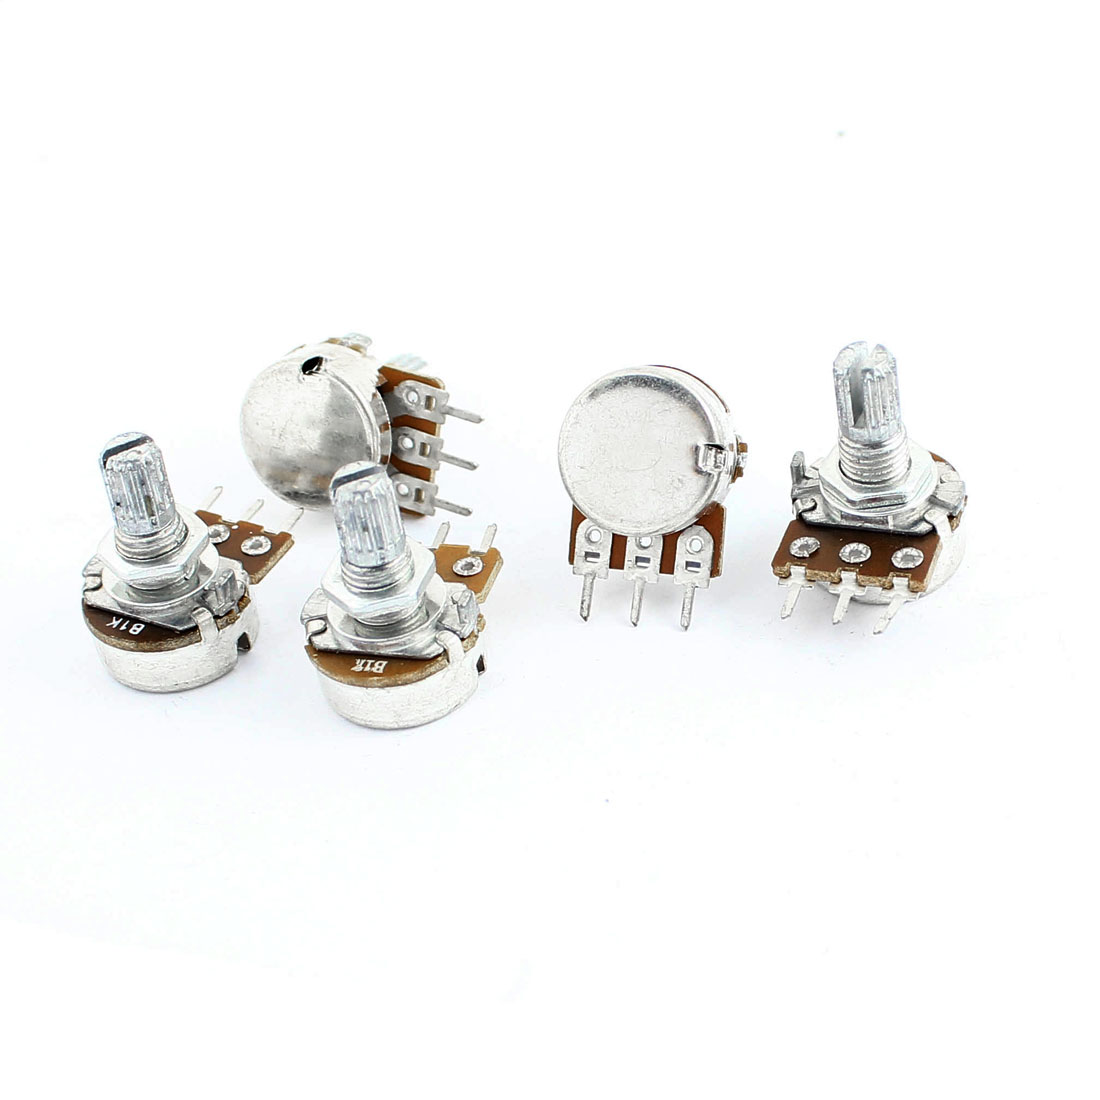 5 Pcs 1K Ohm 6mm Knurled Shaft 3 Terminals Single Linear B Type Rotary Adjustable Taper Potentiometer